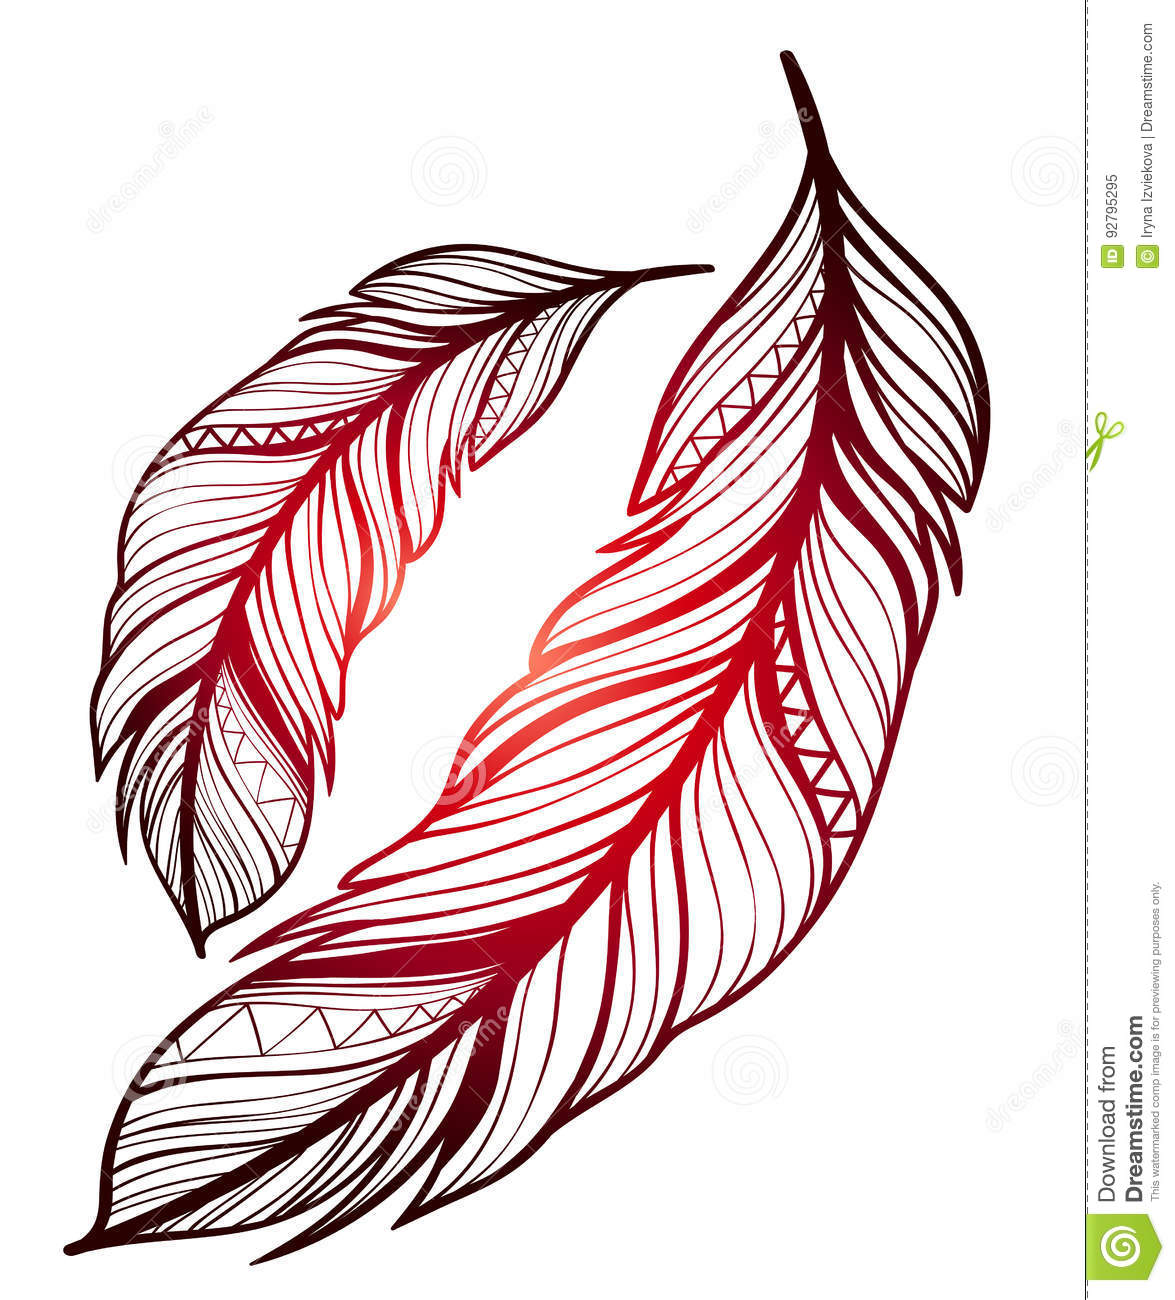 b57e10c93 Sketch tattoos - feathers stock vector. Illustration of american ...